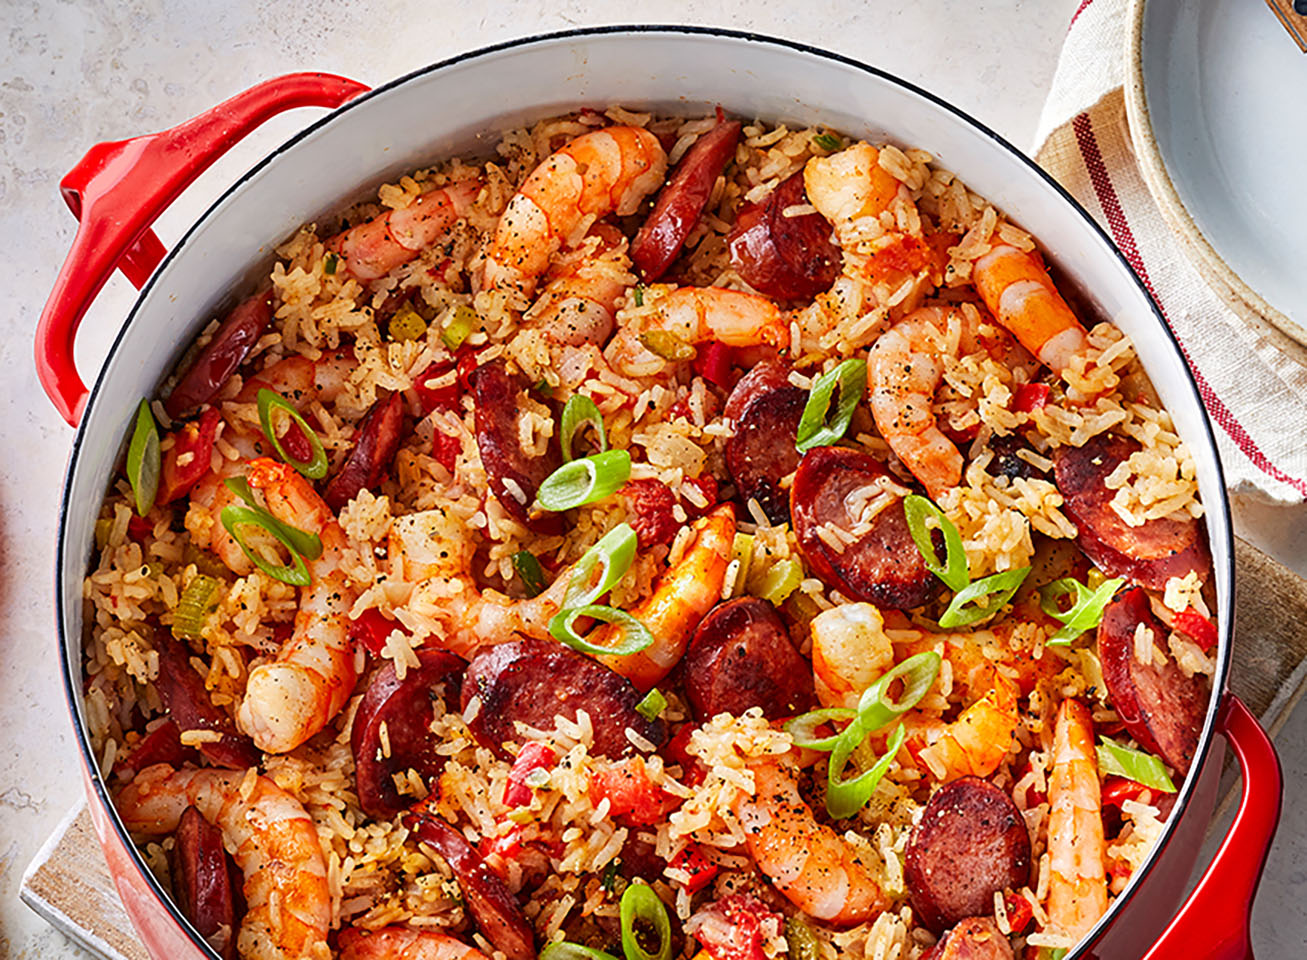 Shrimp and Smoked Sausage Jambalaya